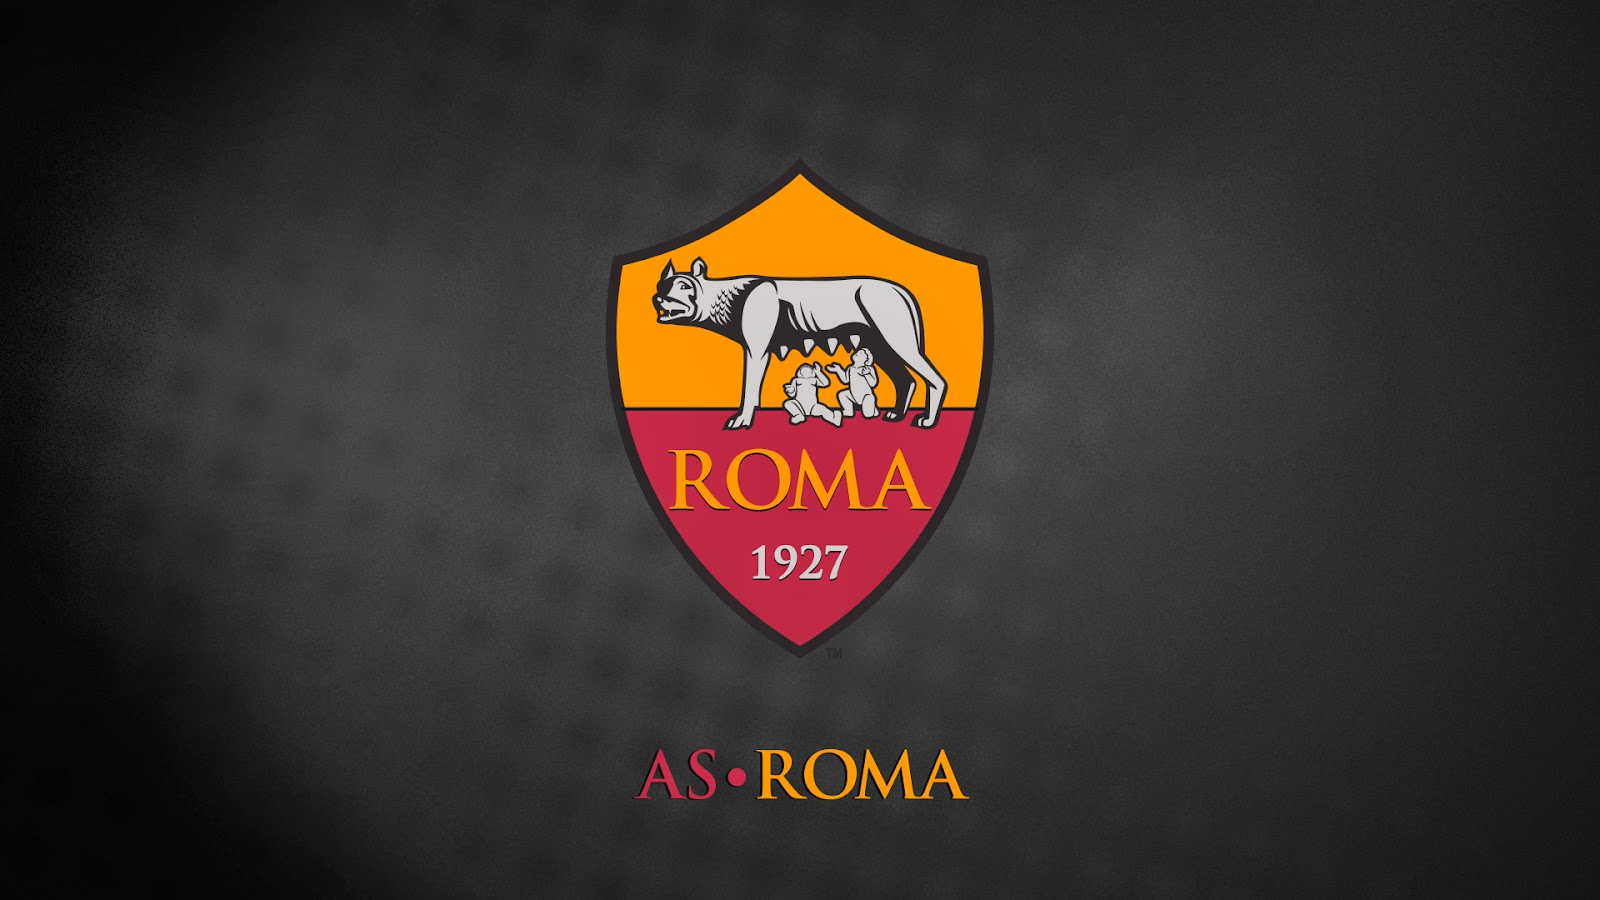 Dream League Soccer A.S. Roma kits and logo URL Free Download  |As Roma